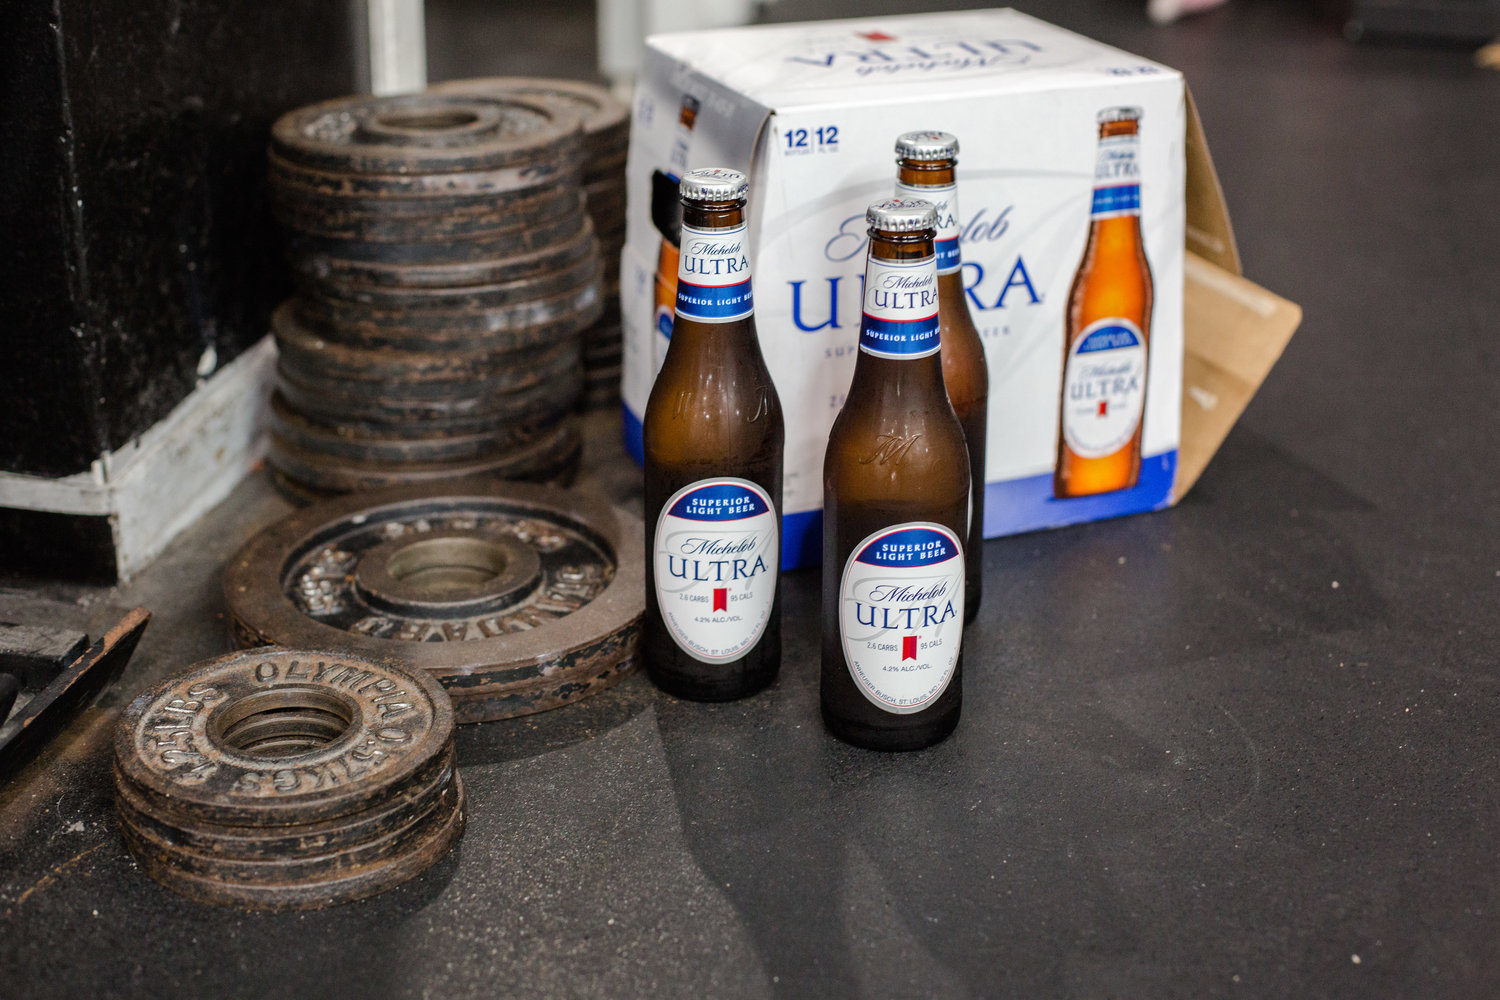 If You're Not First, You're Last — Why Michelob Ultra is the